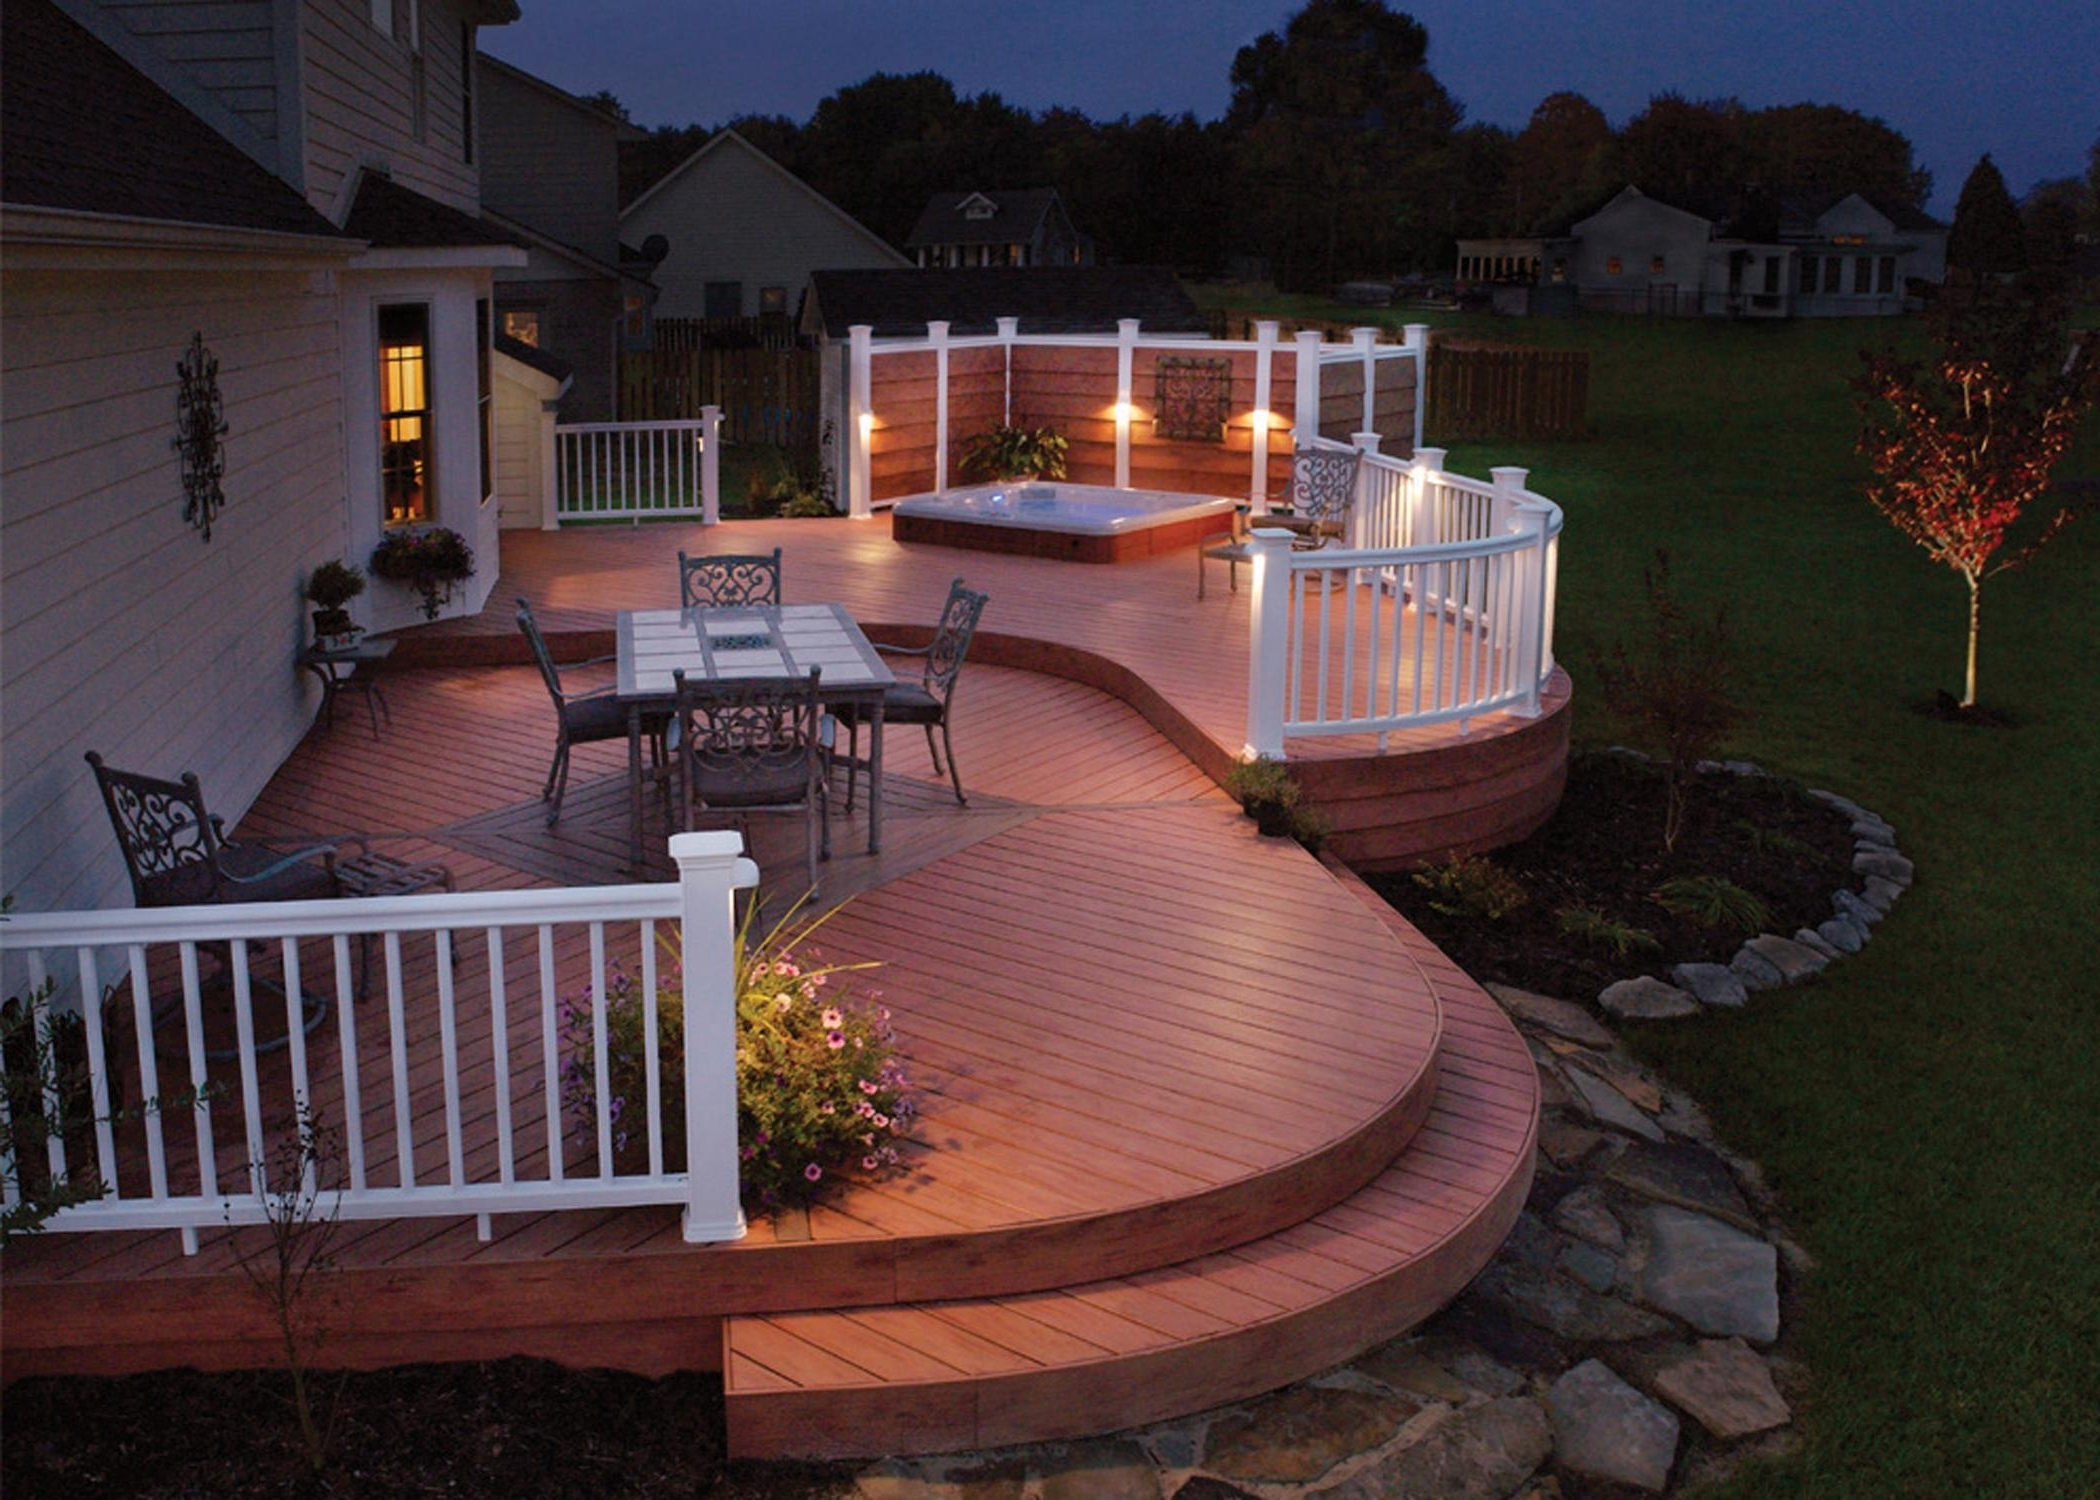 Garden Ideas : Deck Lighting Ideas Some Tips To Get The Best Outdoor Pertaining To Recent Modern Garden Low Voltage Deck Lighting (Gallery 8 of 20)